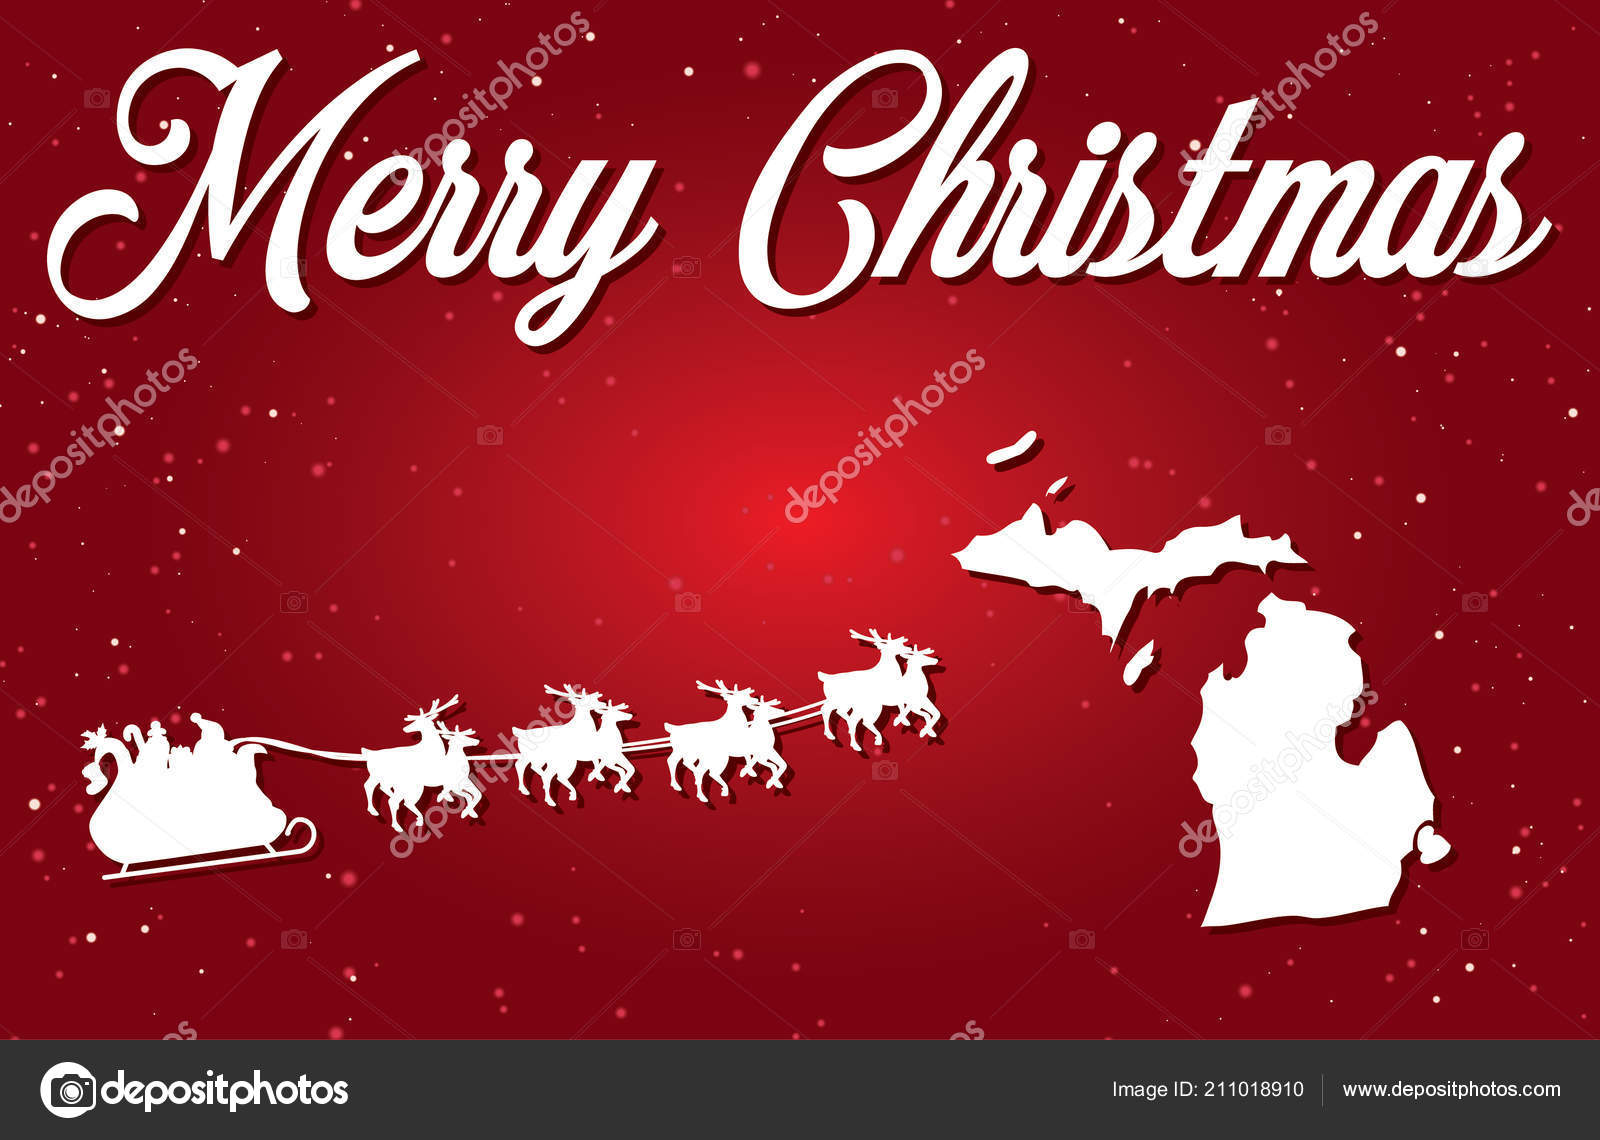 Merry Christmas Illustration Santa Landing State Michigan ...